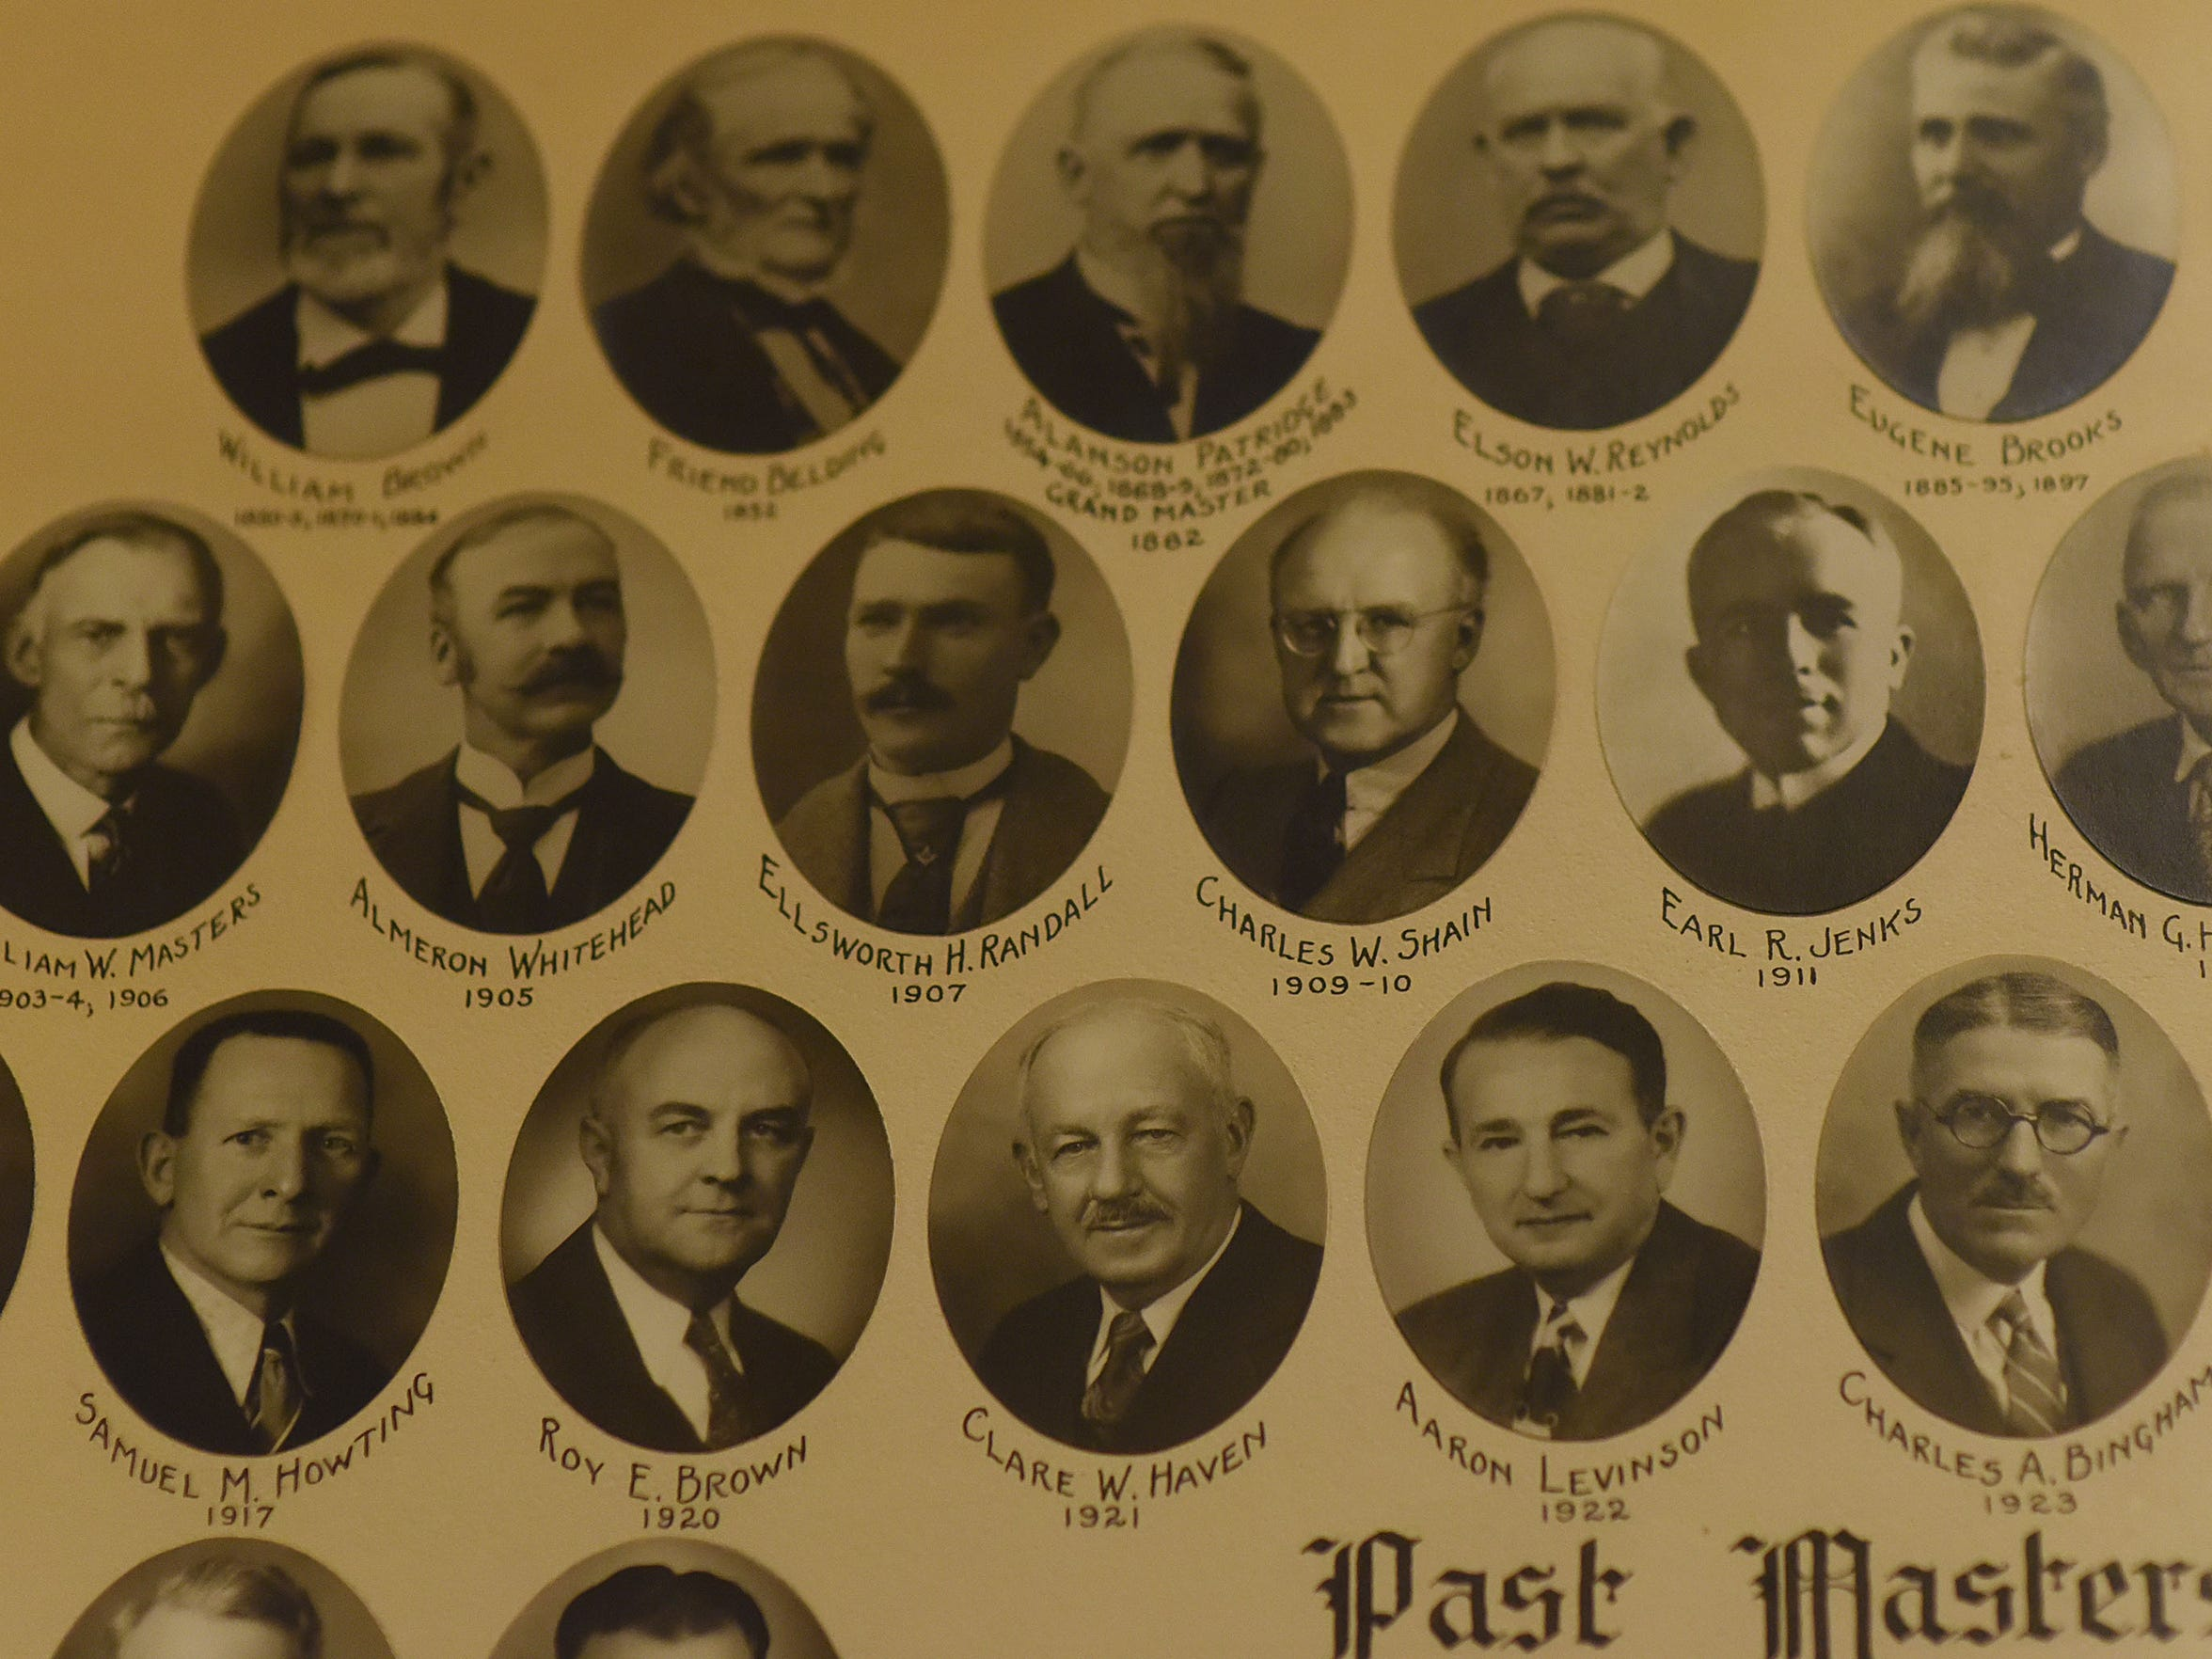 Notable past Masters include Almeron Whitehead, Charles